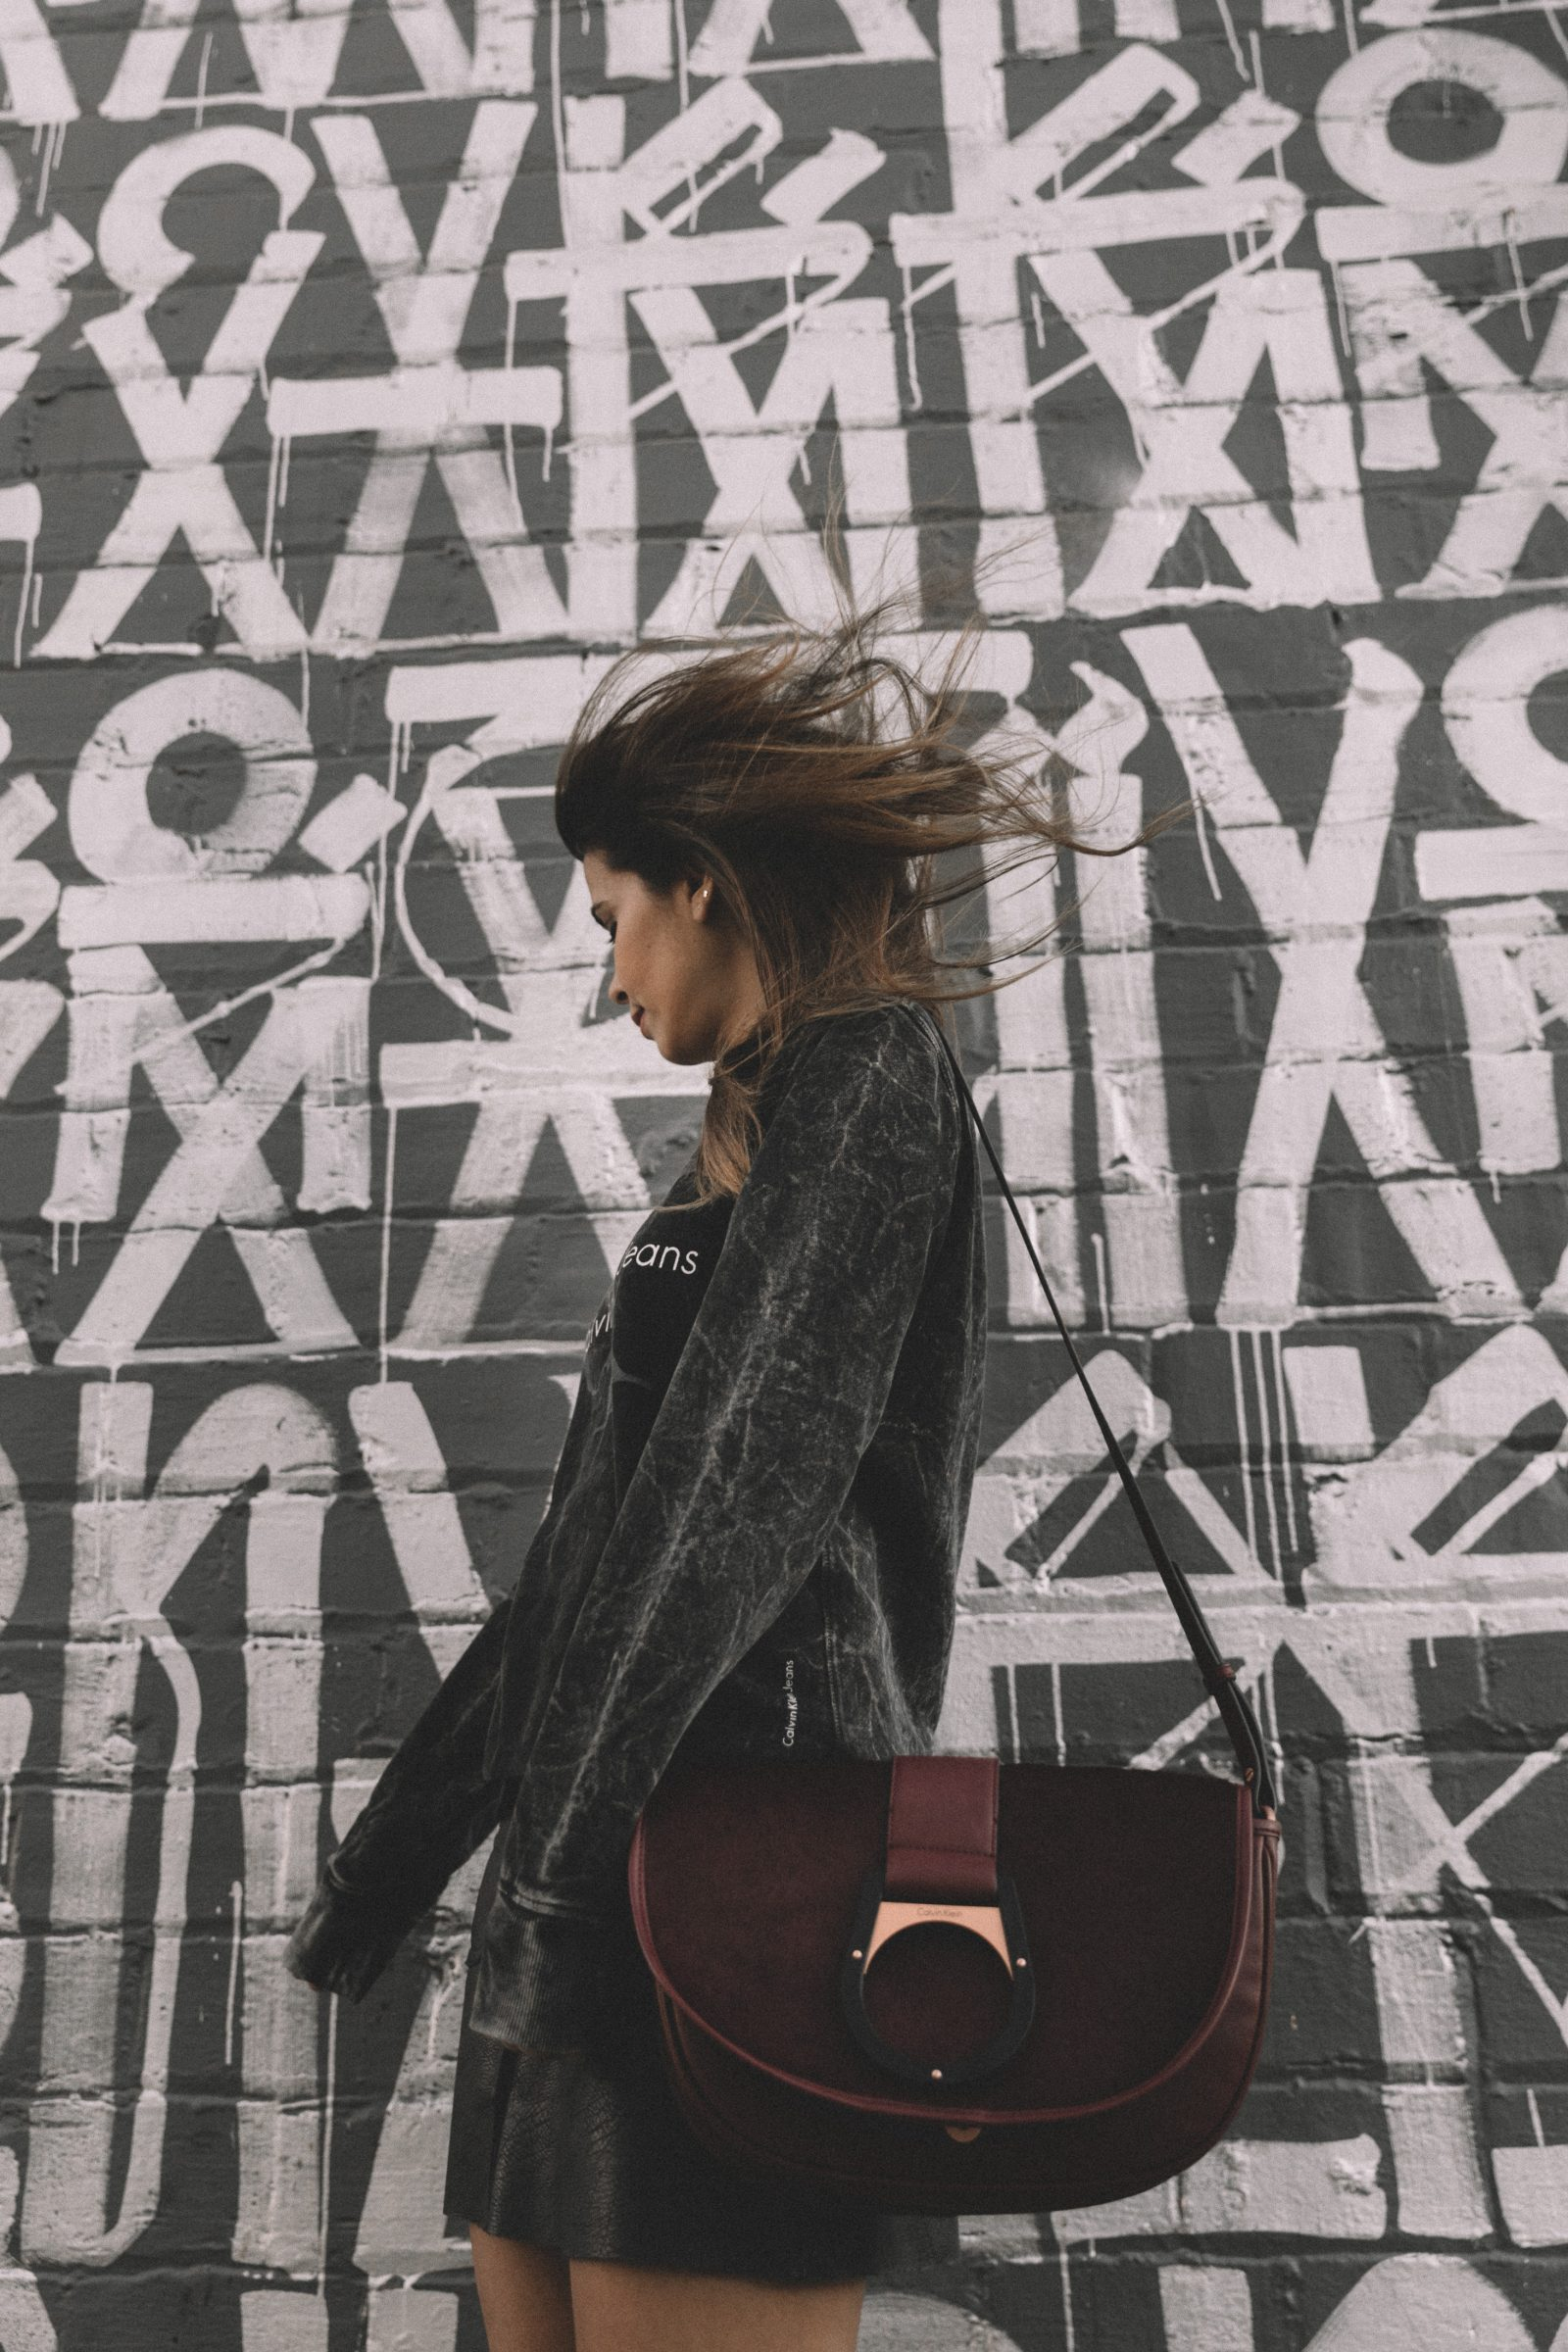 calvin_klein_bag-burgundy_bag-ck_sweatshirt-leather_shirt-total_black_outfit-street_style-los_angeles-collage_vintage